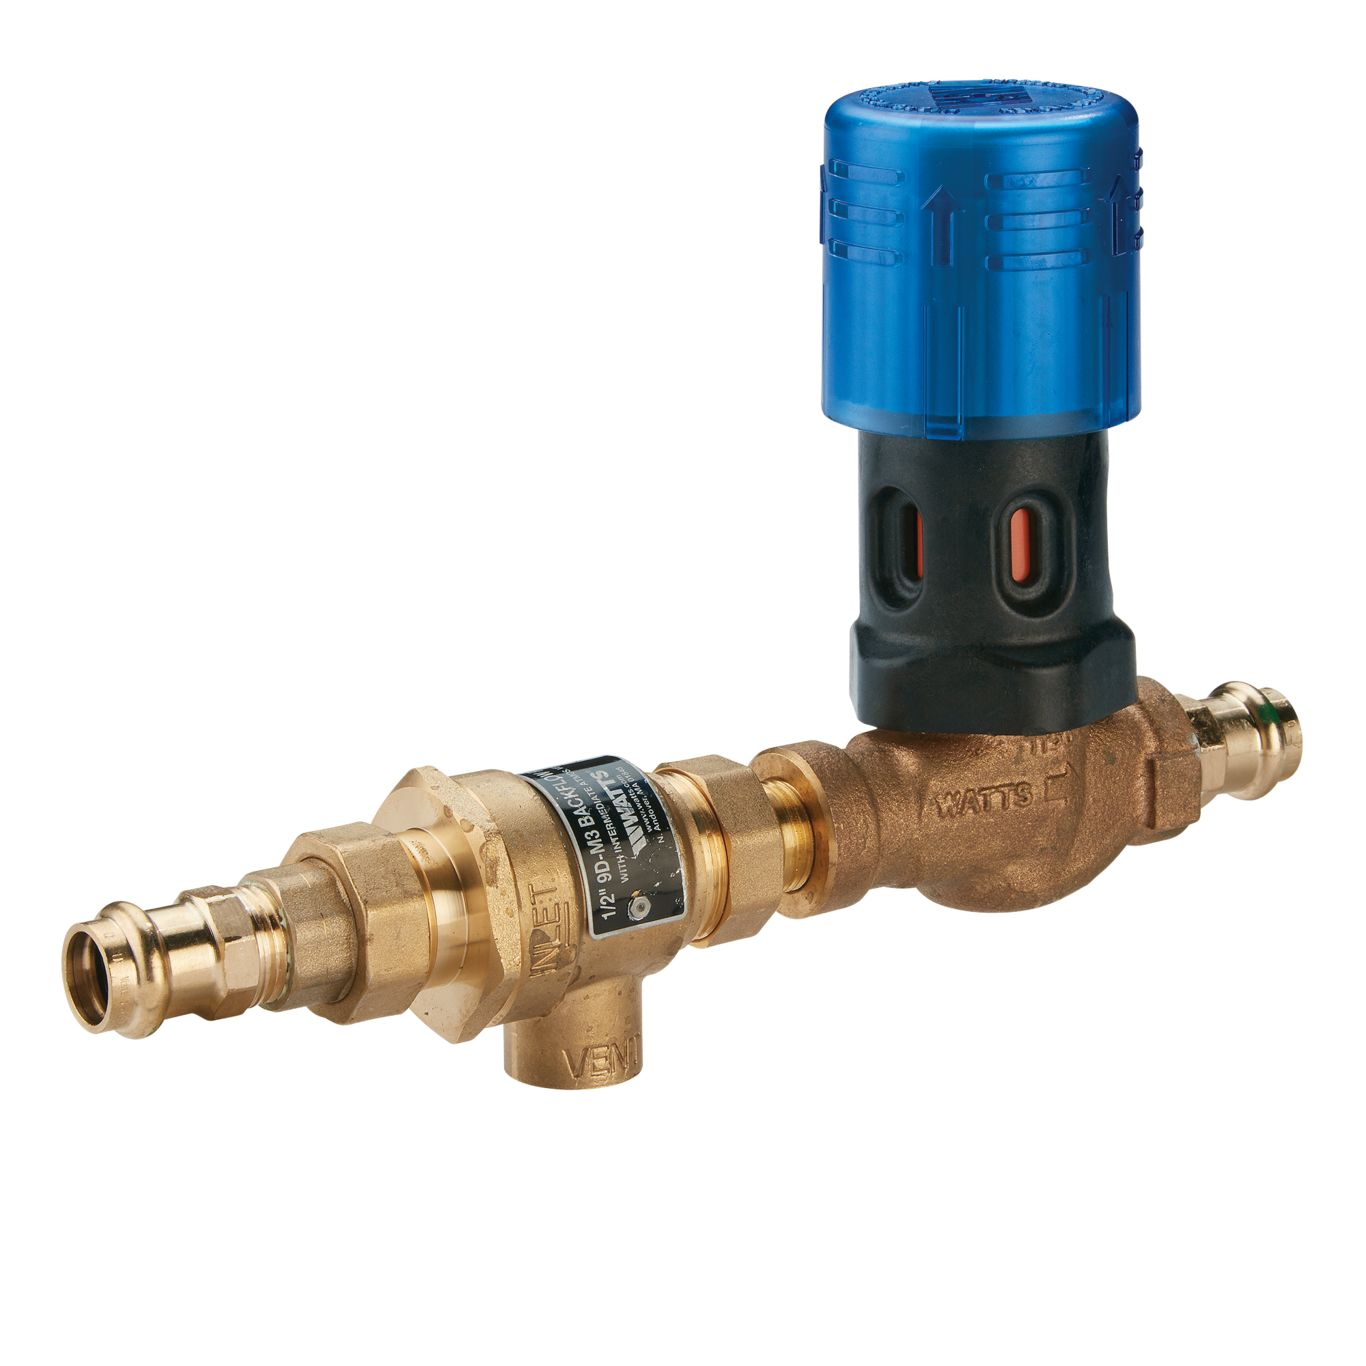 1/2inch BD911S WATTS COMBINATION WATER FEEDER AND